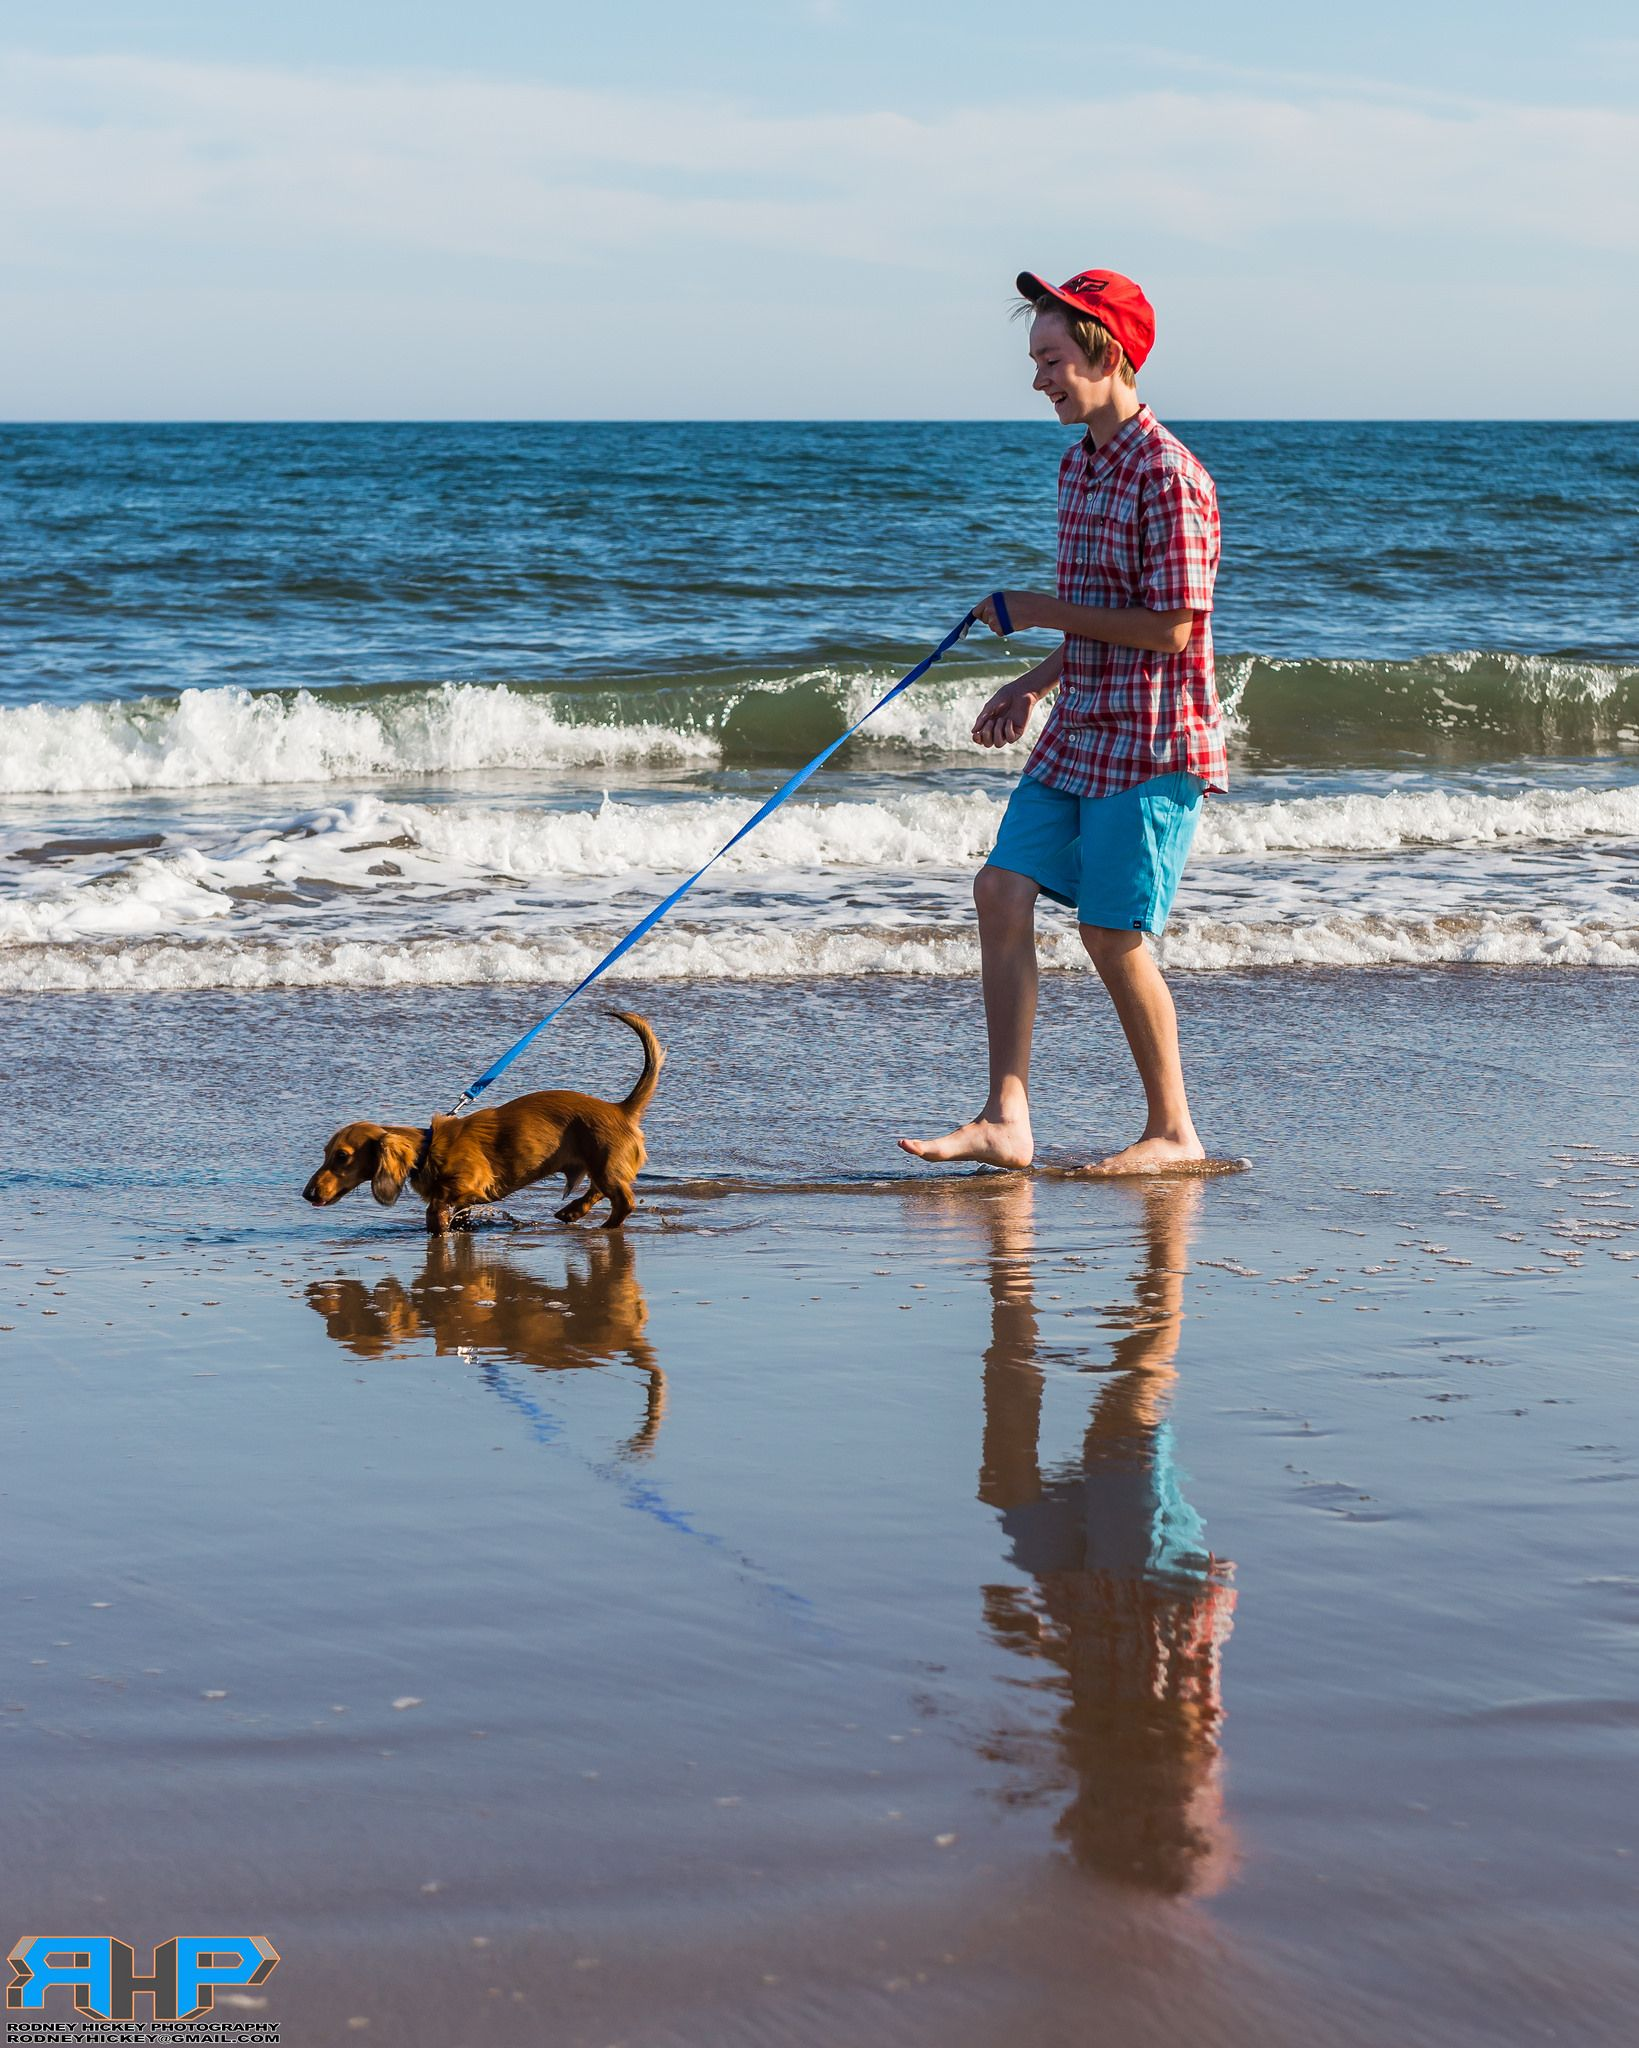 https://flic.kr/p/vXNibx | A Walk on the Beach   - Best viewed Large at http://www.flickr.com/photos/sizzler68/ - © Rodney Hickey Photography 2015